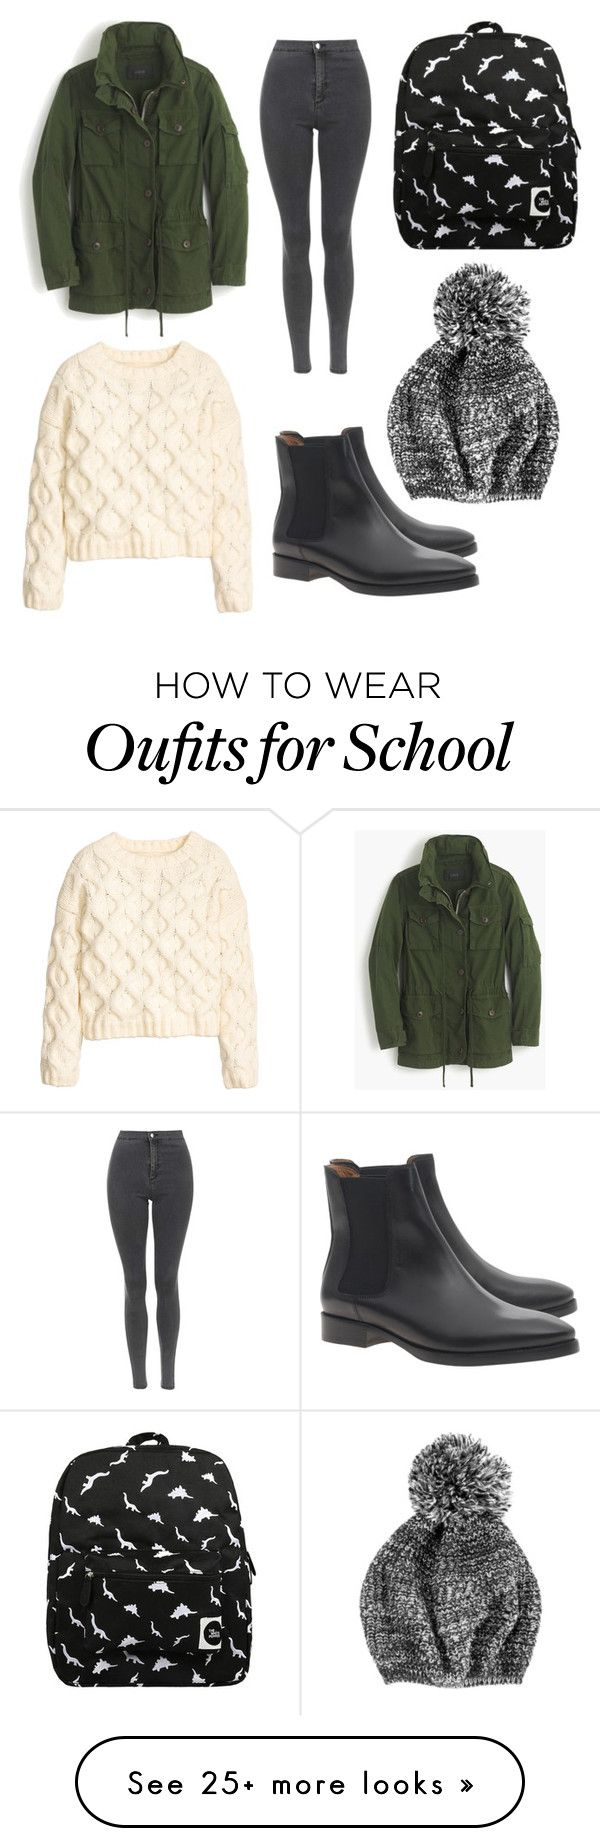 """School"" by krystaltk8 on Polyvore featuring J.Crew, H&M, Topshop, Acne Studios and Forever 21"